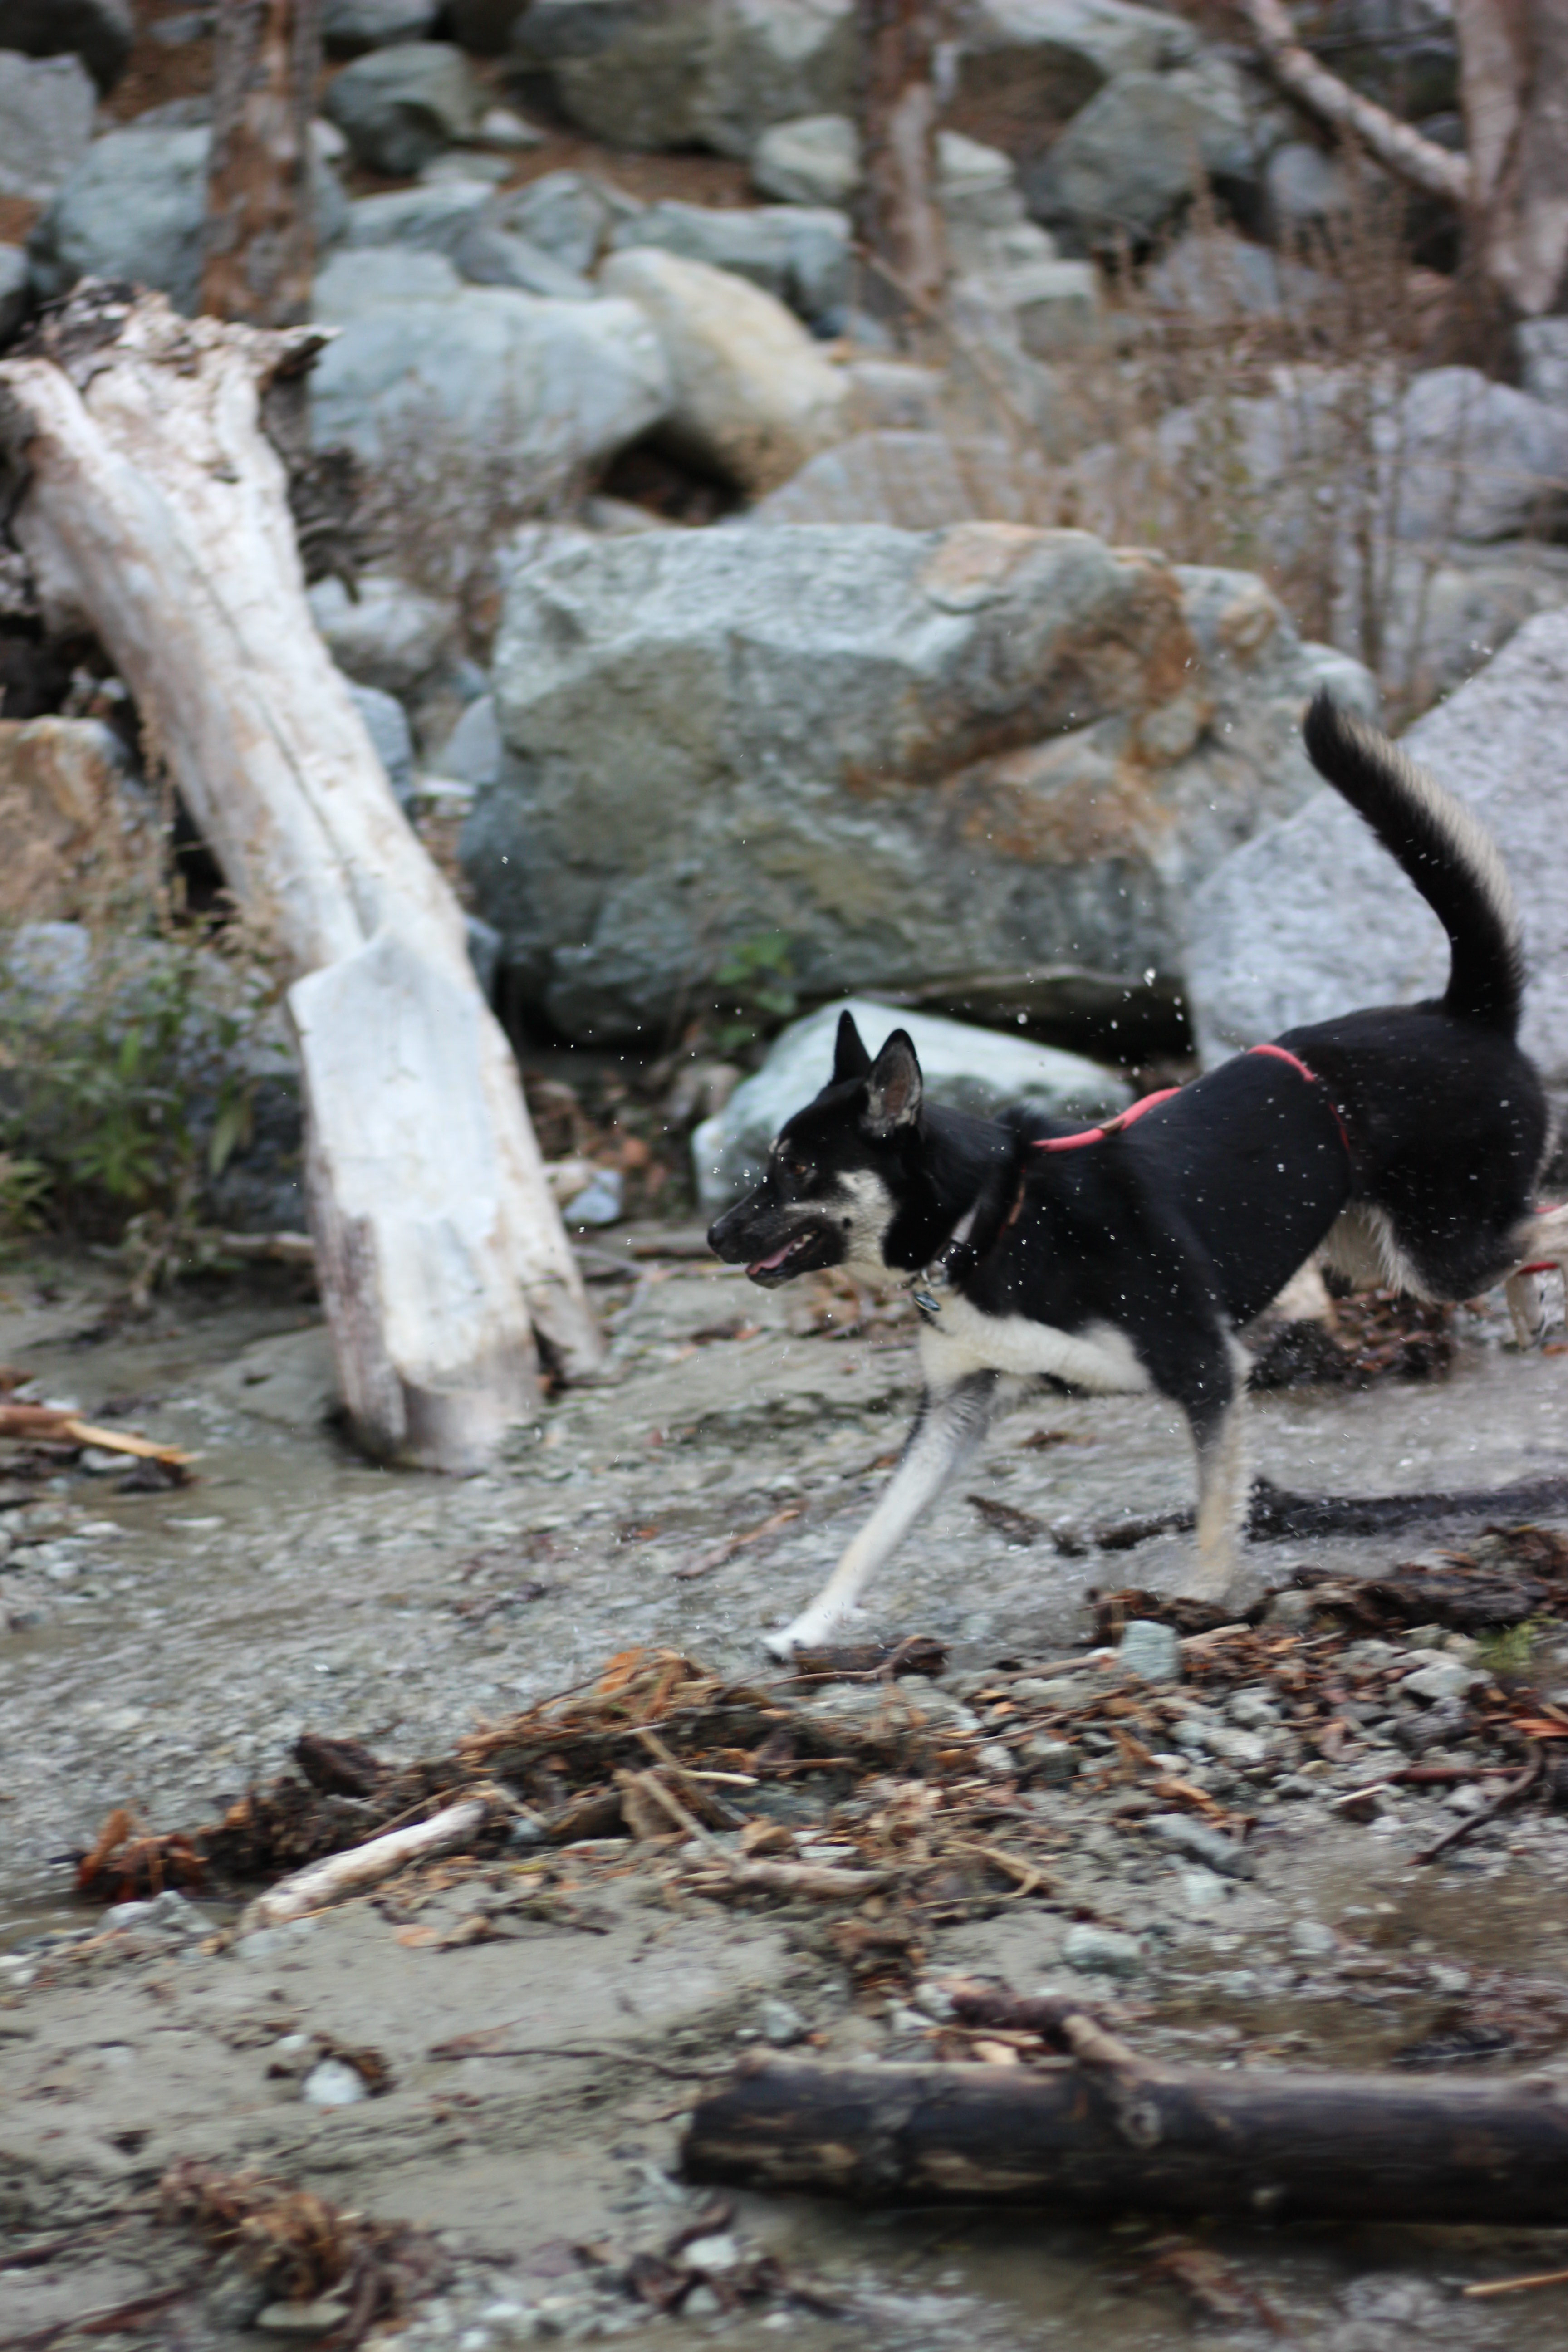 Penny playing in the stream